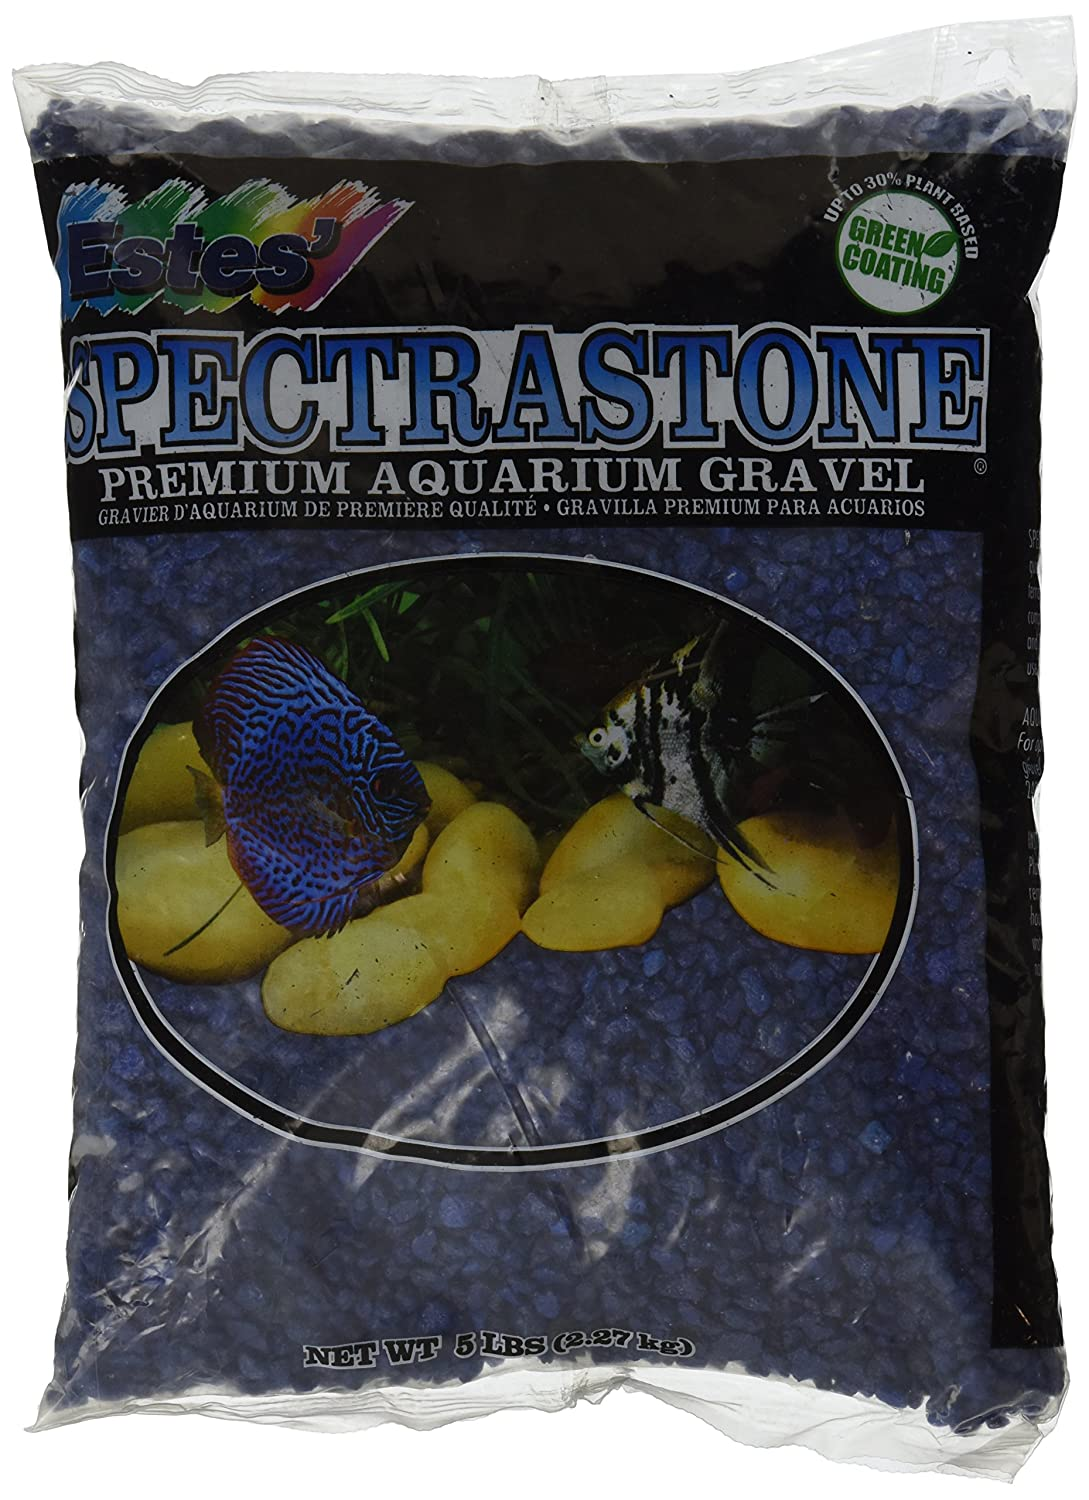 Amazon.com : Spectrastone Special Blue Aquarium Gravel for Freshwater Aquariums, 5-Pound Bag : Aquarium Decor Gravel : Pet Supplies